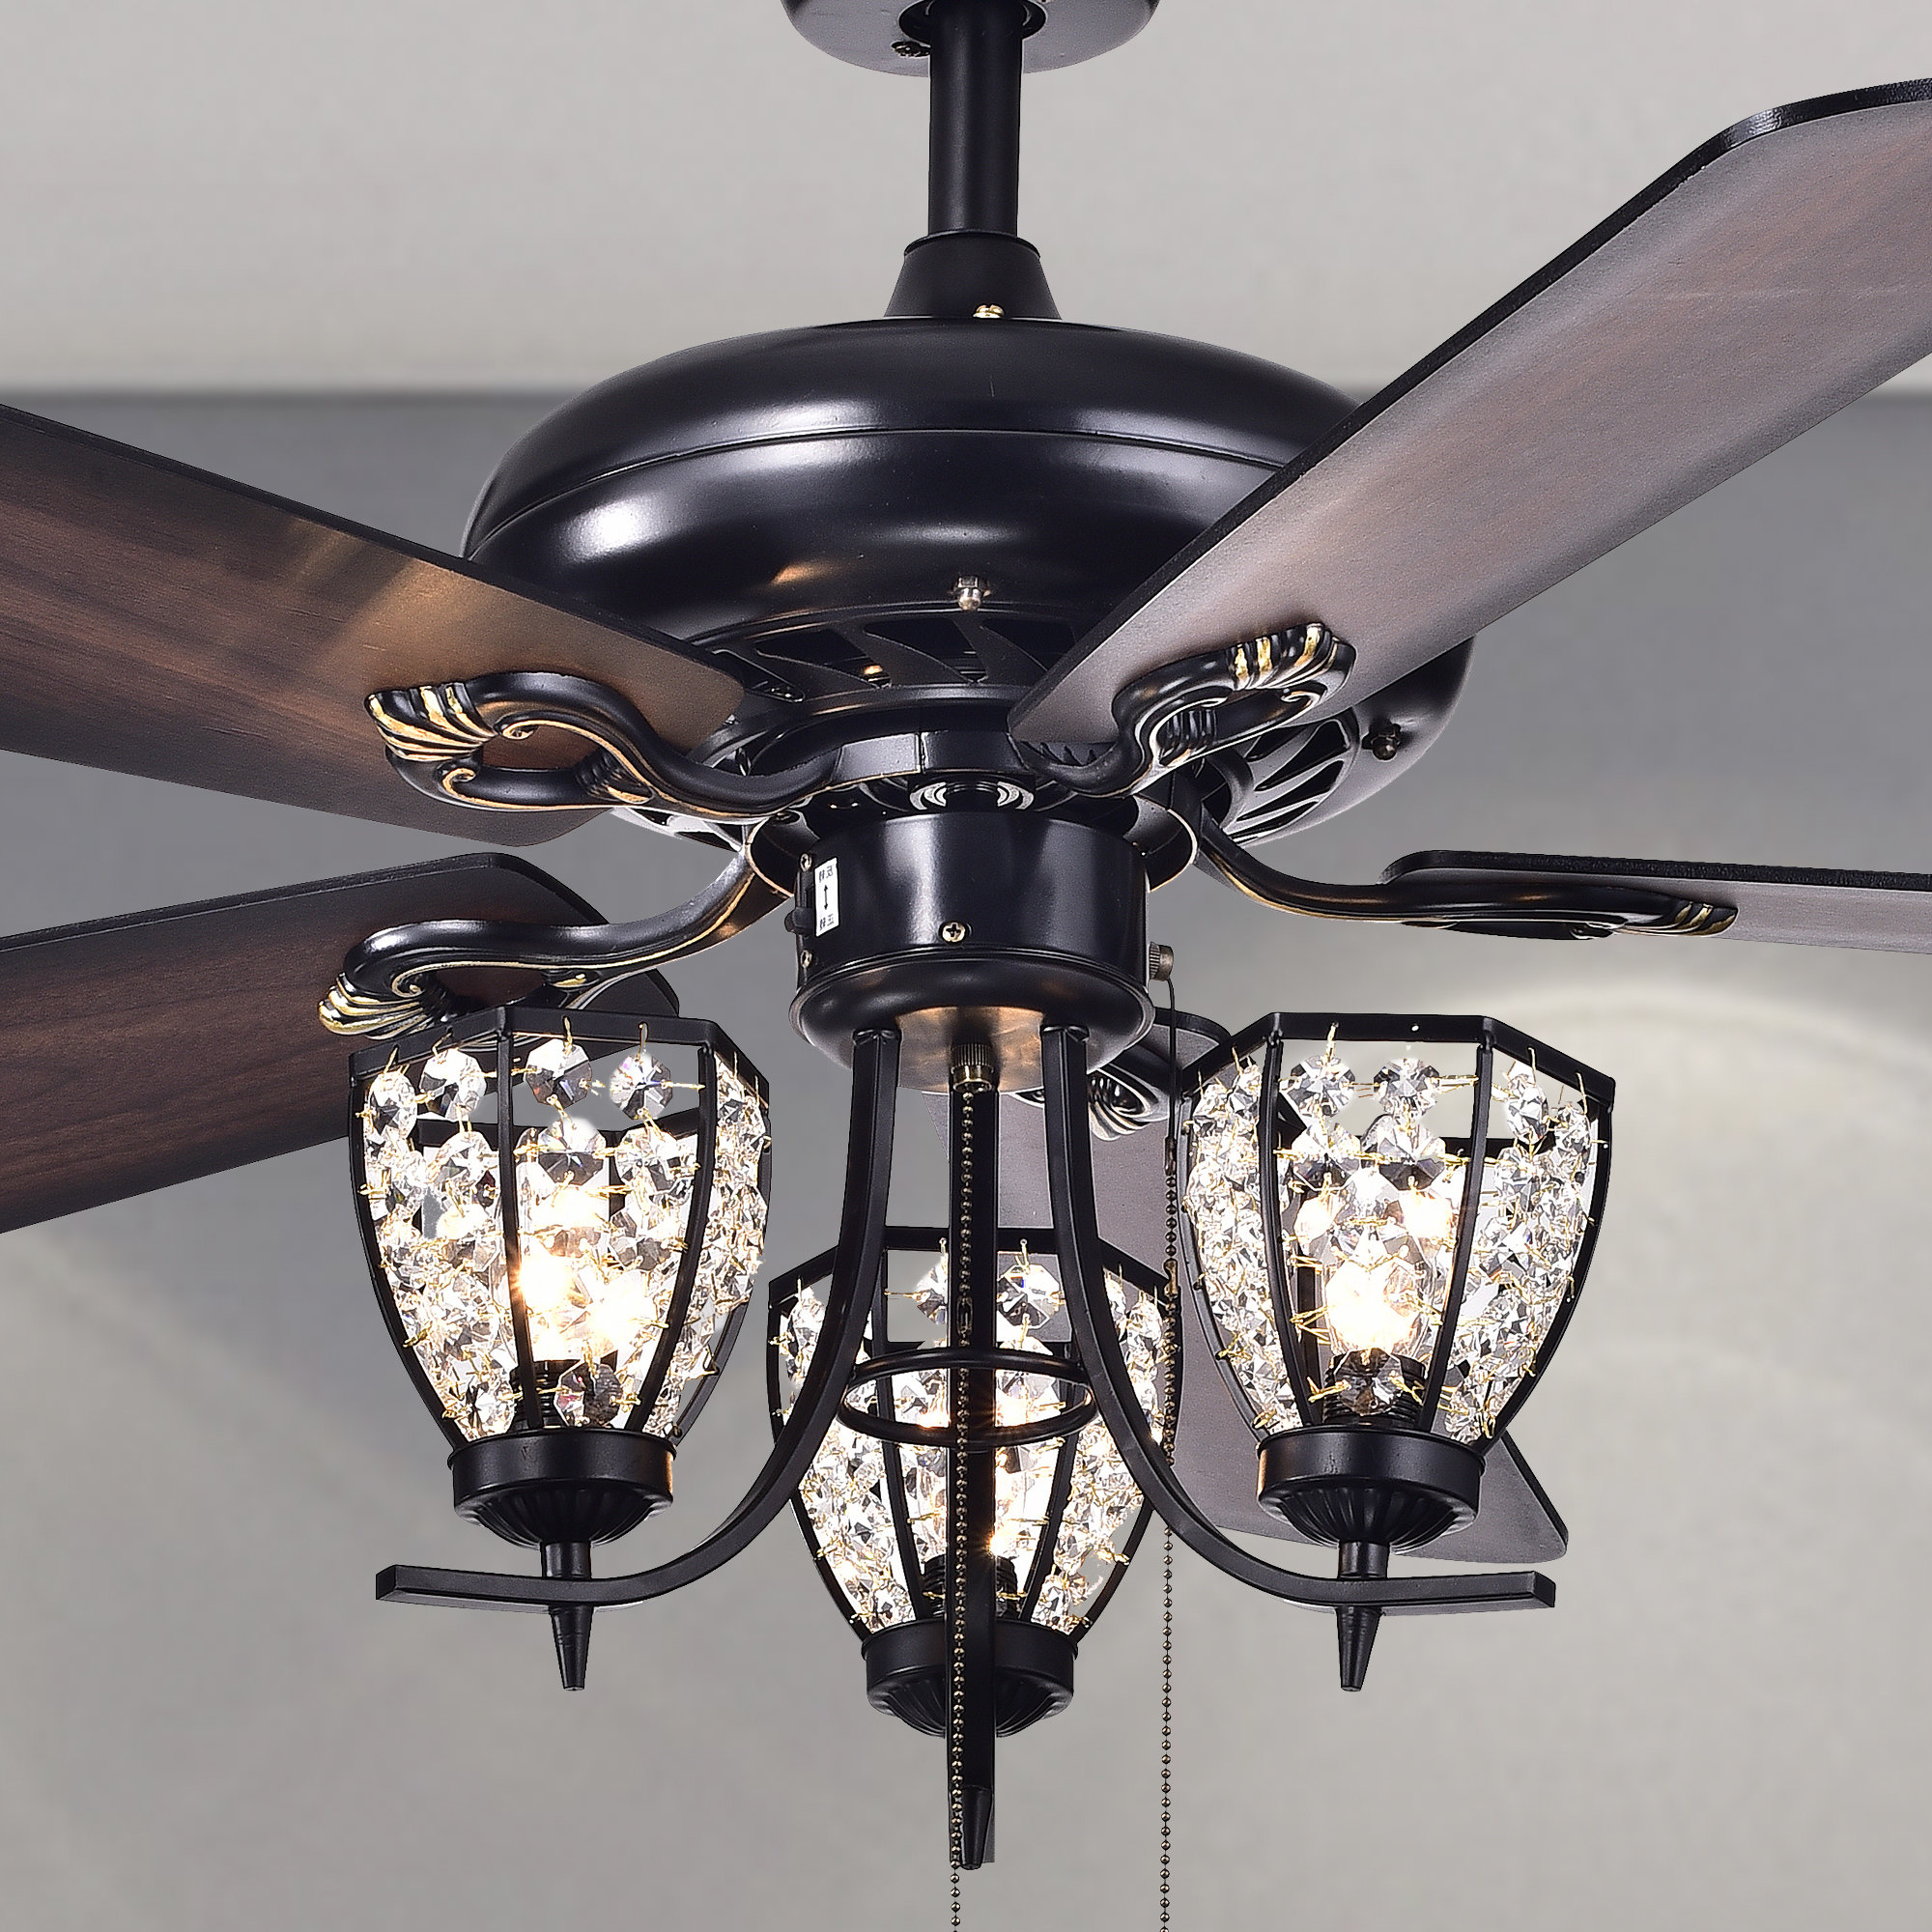 Popular Dunaghy 5 Blade Ceiling Fans In 5 Blade Ceiling Fan, Light Kit Included (View 14 of 20)